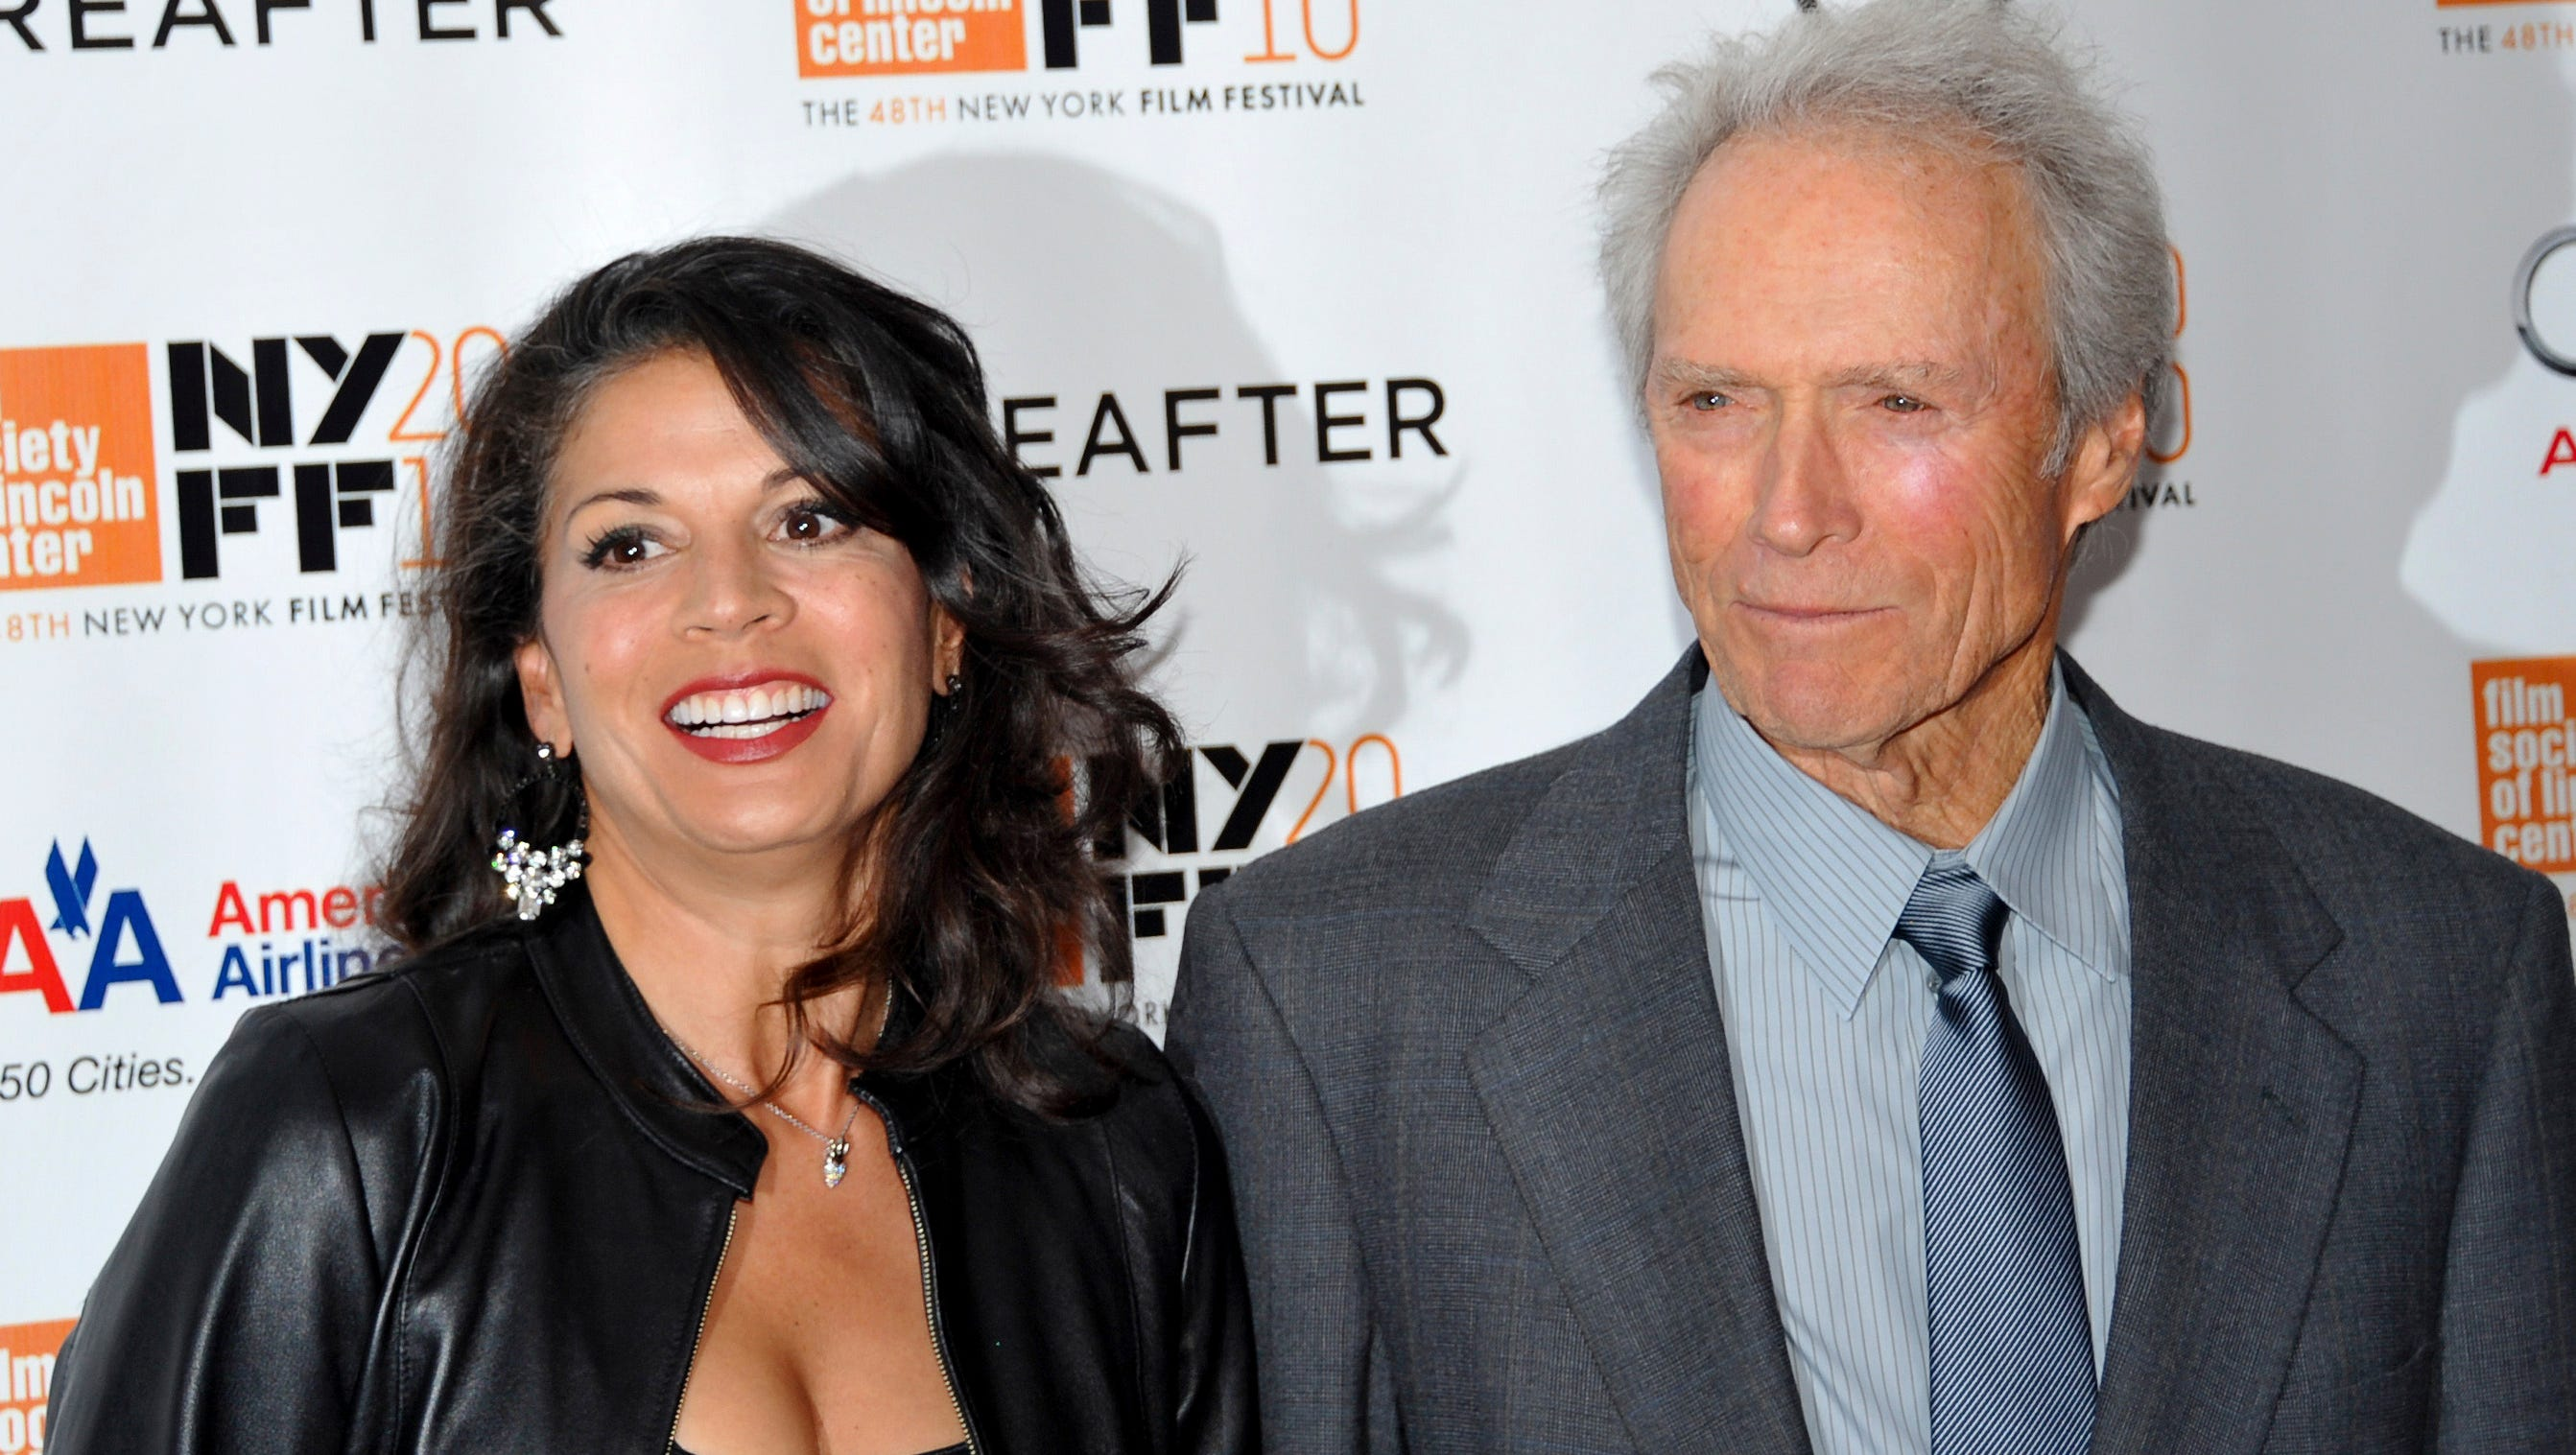 Clint Eastwood Now